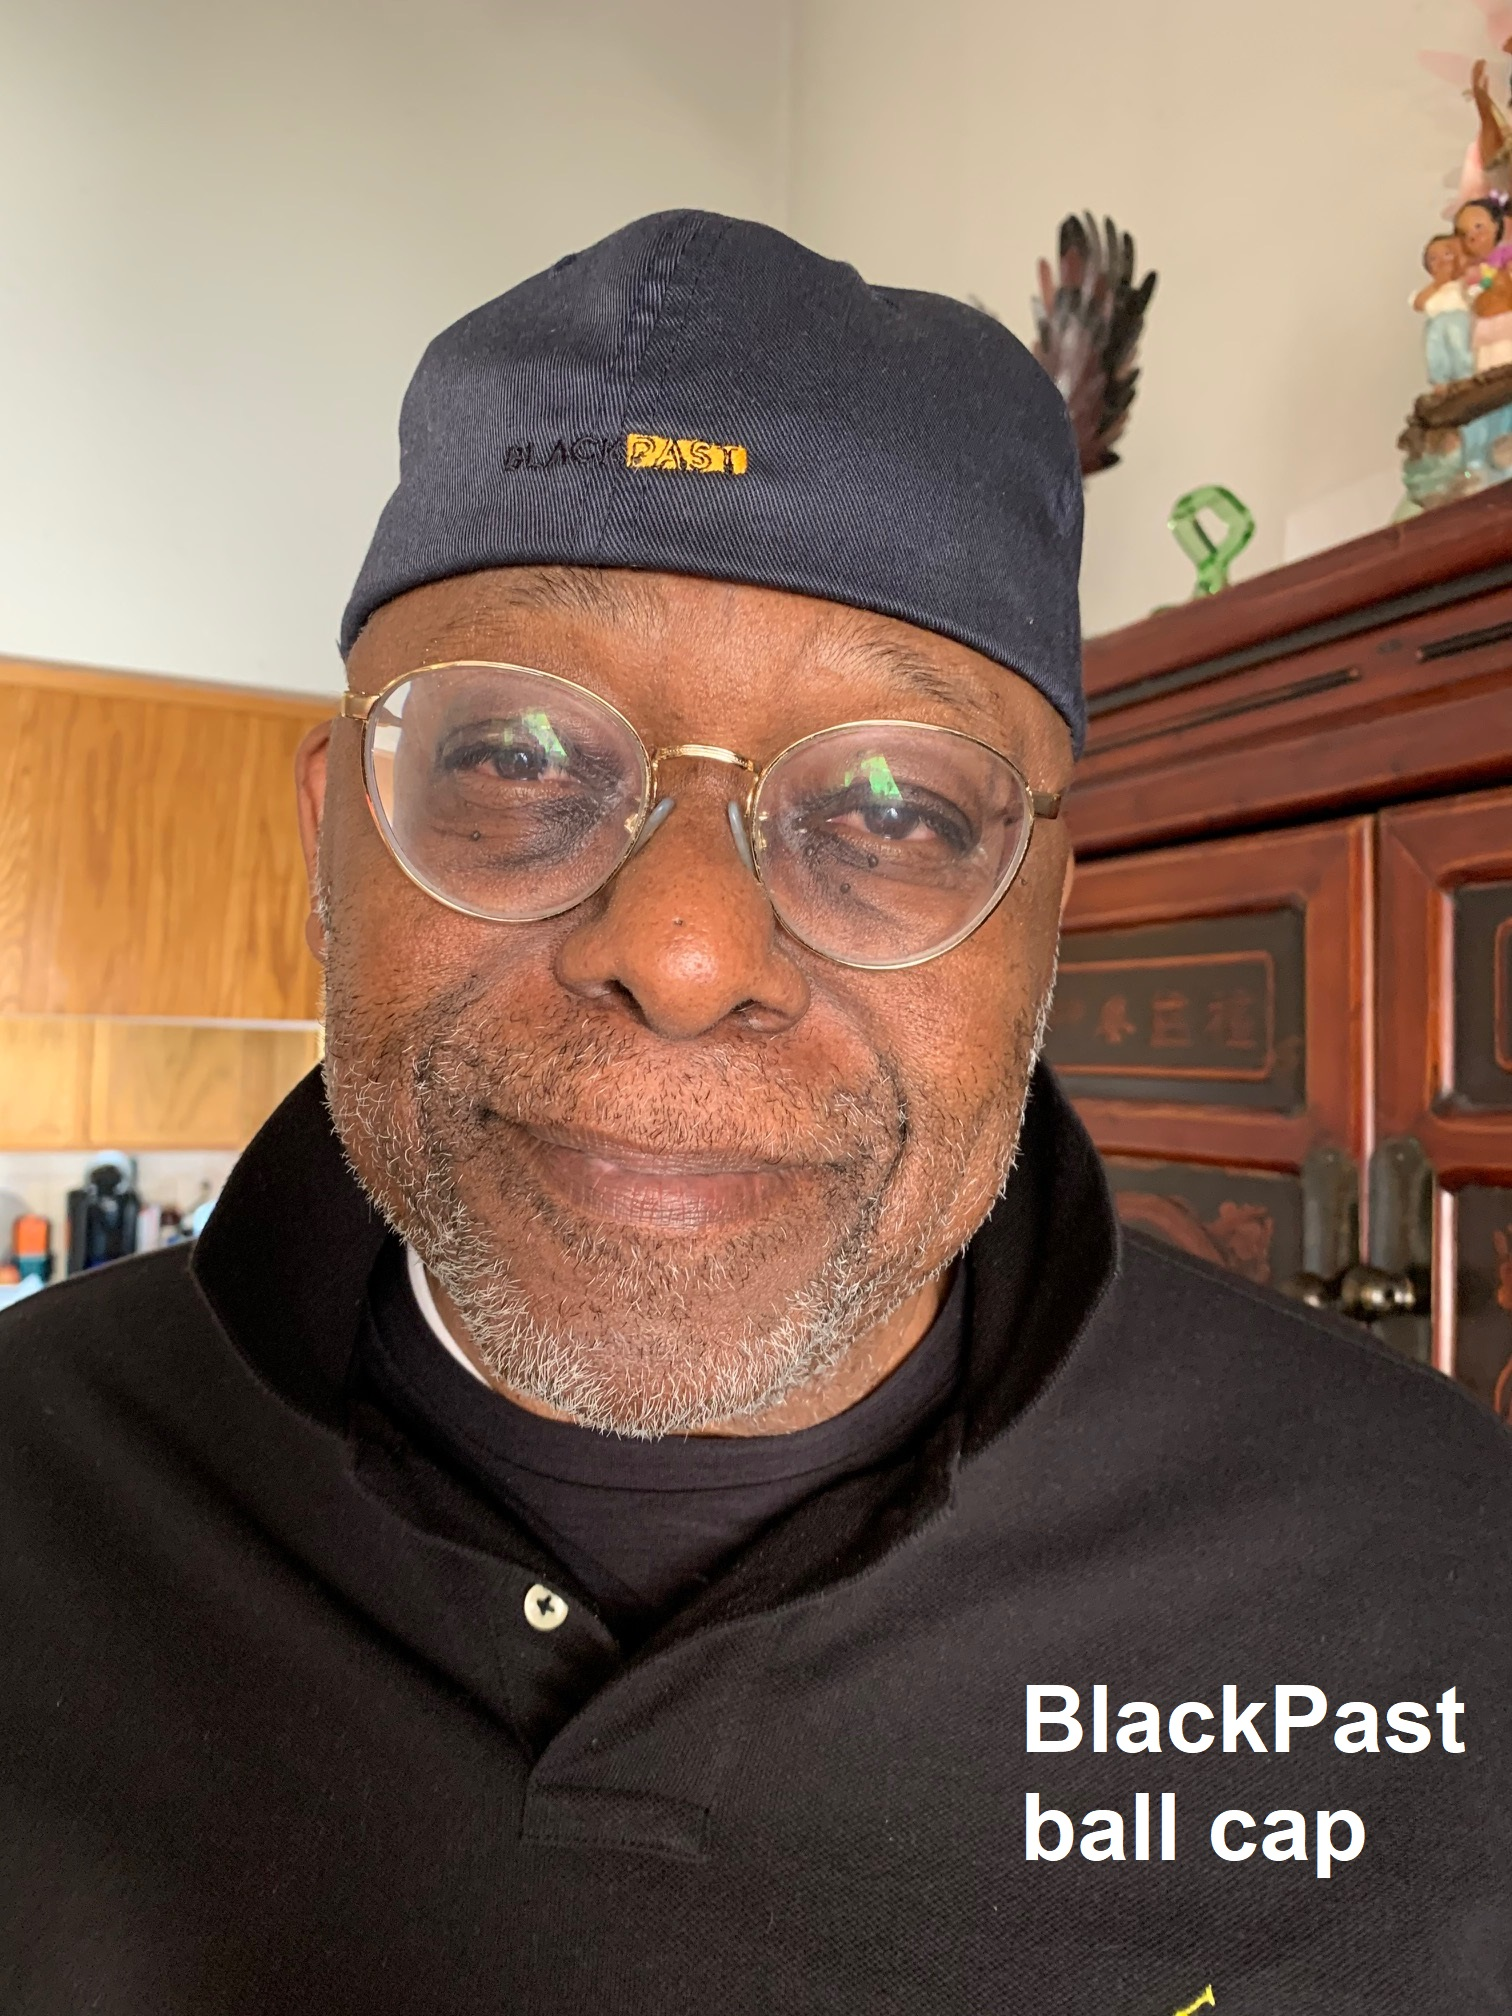 BlackPast Ball Cap